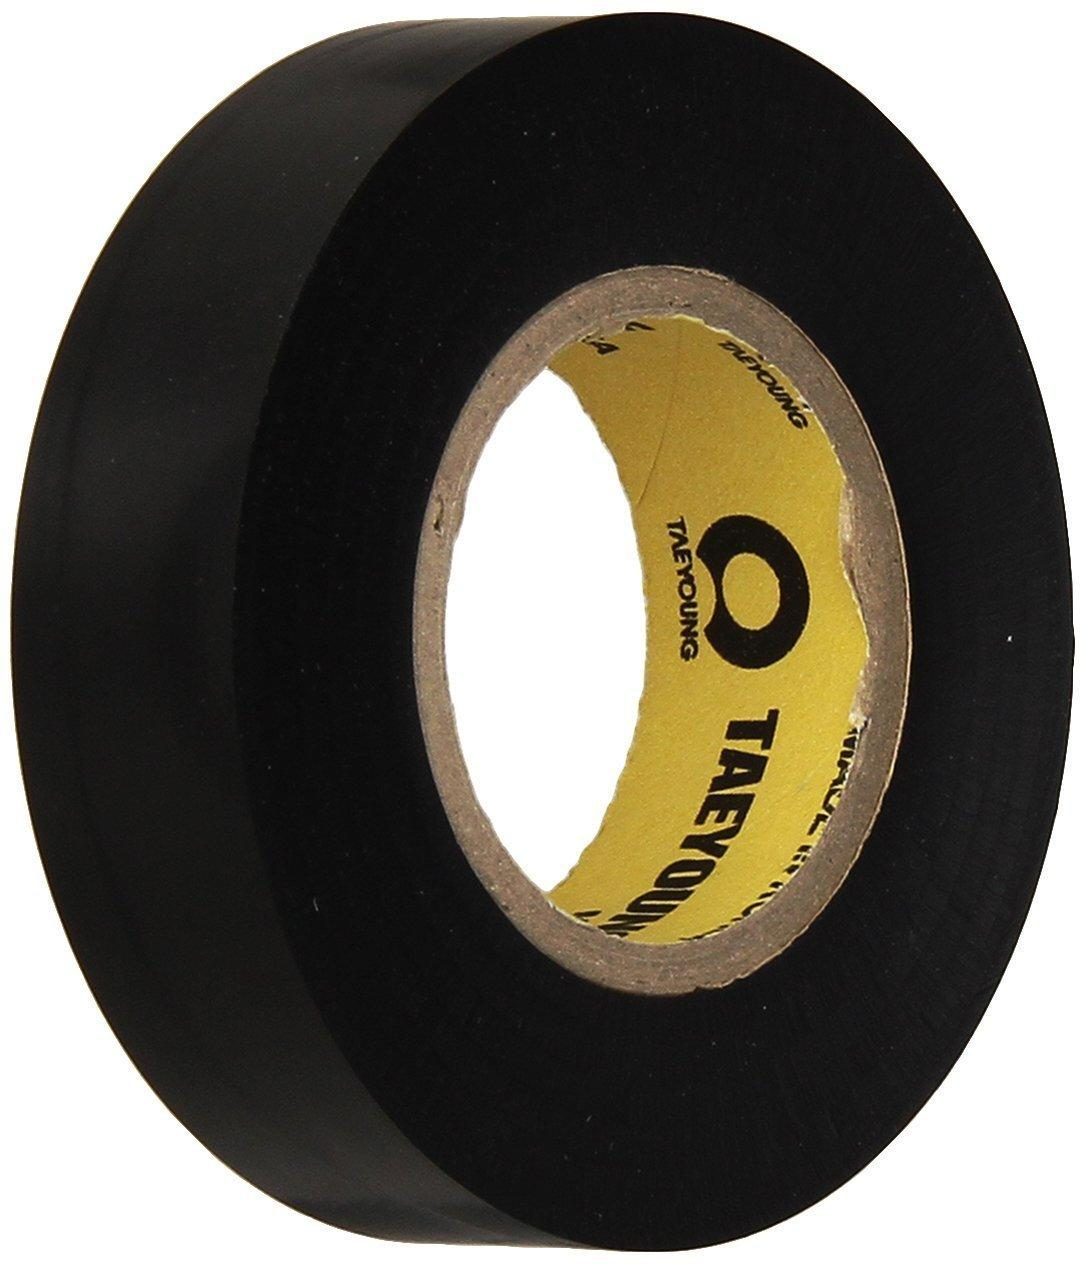 7ec9dd37 c493 4470 bbae e6c1aa1fe700._SR300300_ tapecase tc790 dry vinyl tape (multiple sizes) amazon com non adhesive wire harness wrapping tape at soozxer.org